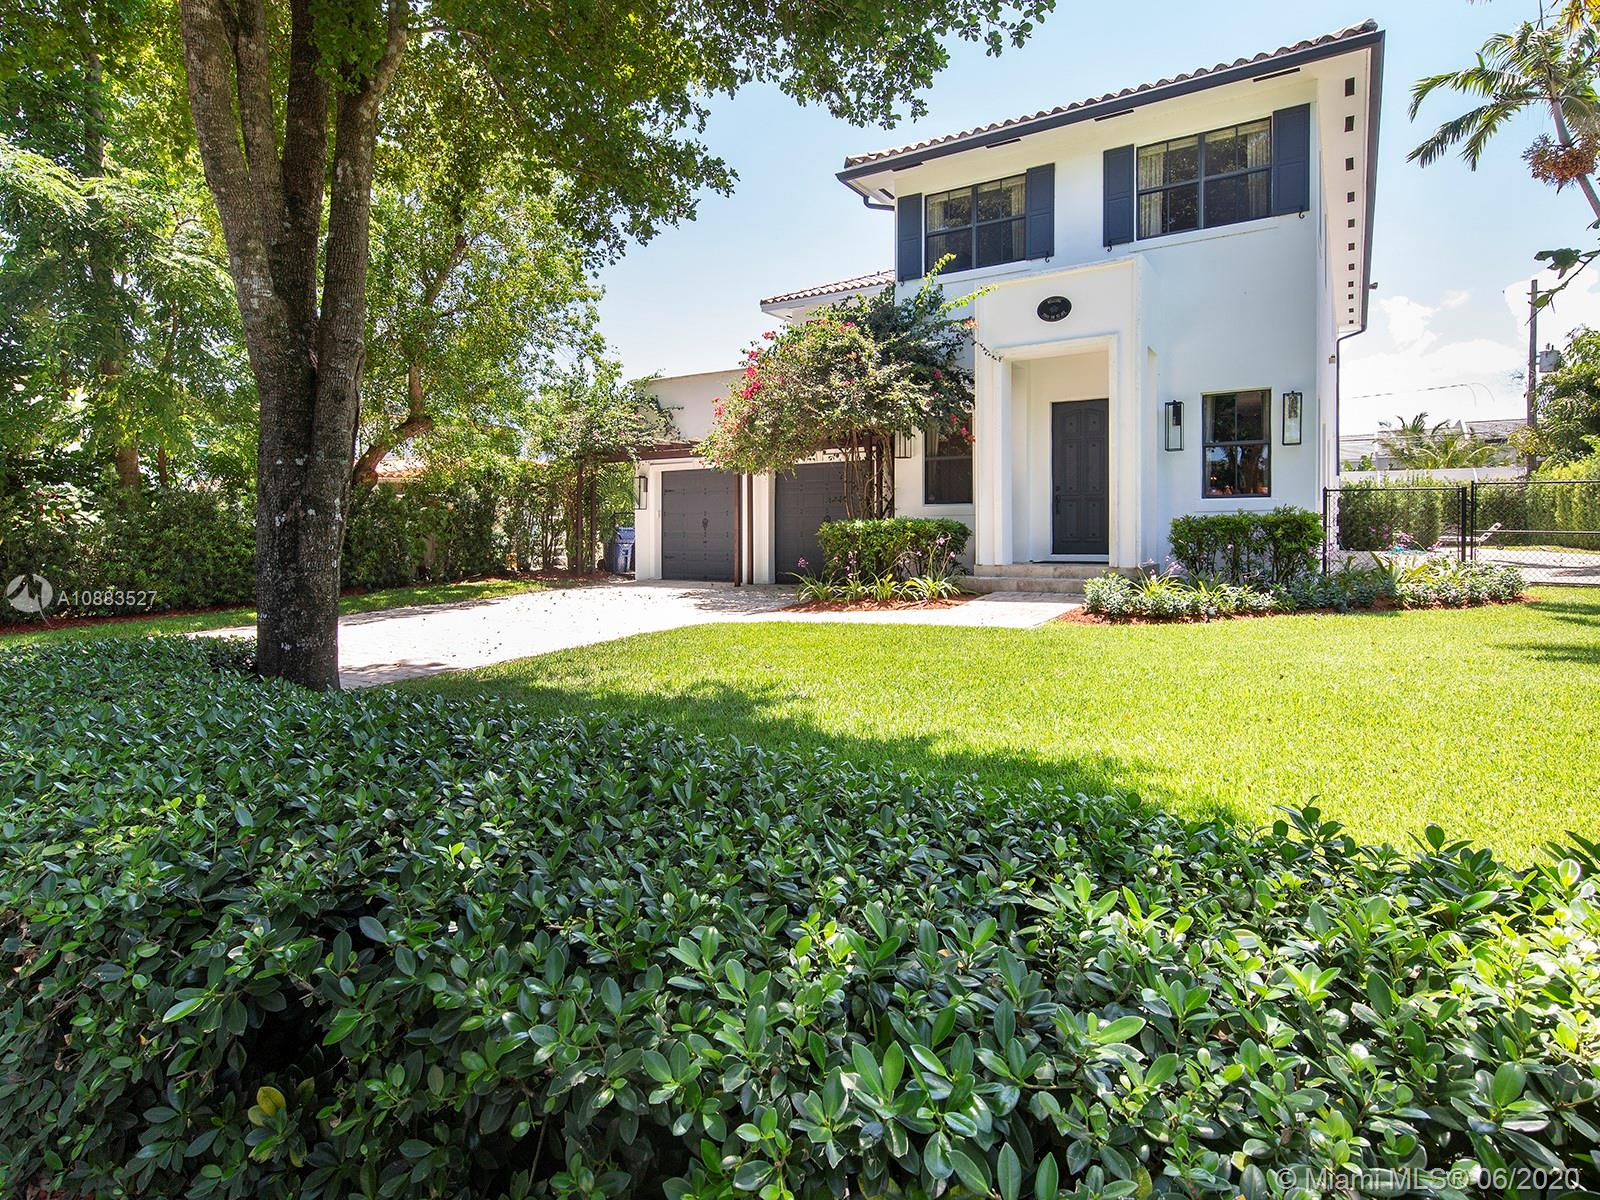 Buyers are flocking to the rapidly appreciating neighborhood of High Pines because of it's village like feel and location near South Miami's excellent schools, shopping, dining and parks.   Situated within the Sunset Elementary school district, one of the top schools in Miami and within minutes of the top private schools like Ransom, Carrolton and Gulliver.  This property checks all the boxes when it comes to purchasing real estate starting with the first and foremost... Location!   The home has undergone renovation since it's construction in 2007. The first floor opens to a large formal living room with 11 ft ceilings throughout and includes designed mill work, textured walls, and  a large guest room.  The second floor  offers a functional landing area and a very large master suite.